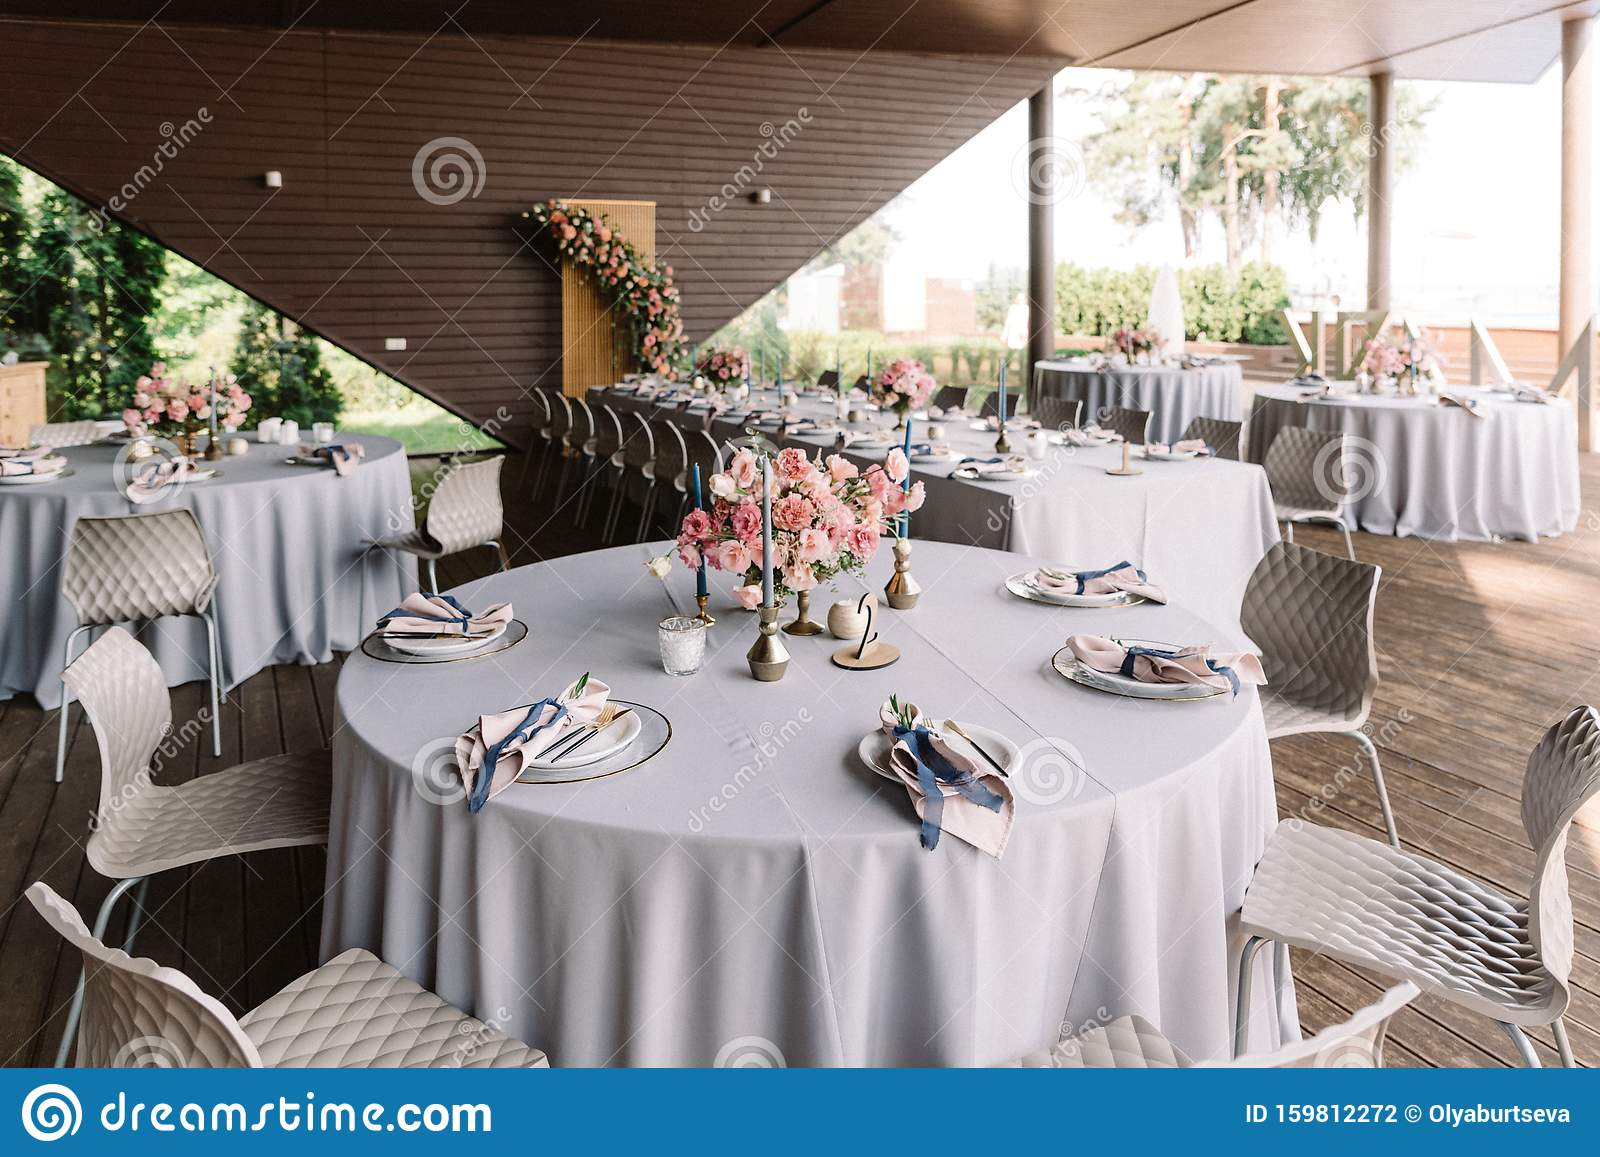 Round Banquet Table In The Restaurant Modern Wedding Decor Stock Photo Image Of Festive Candle 159812272